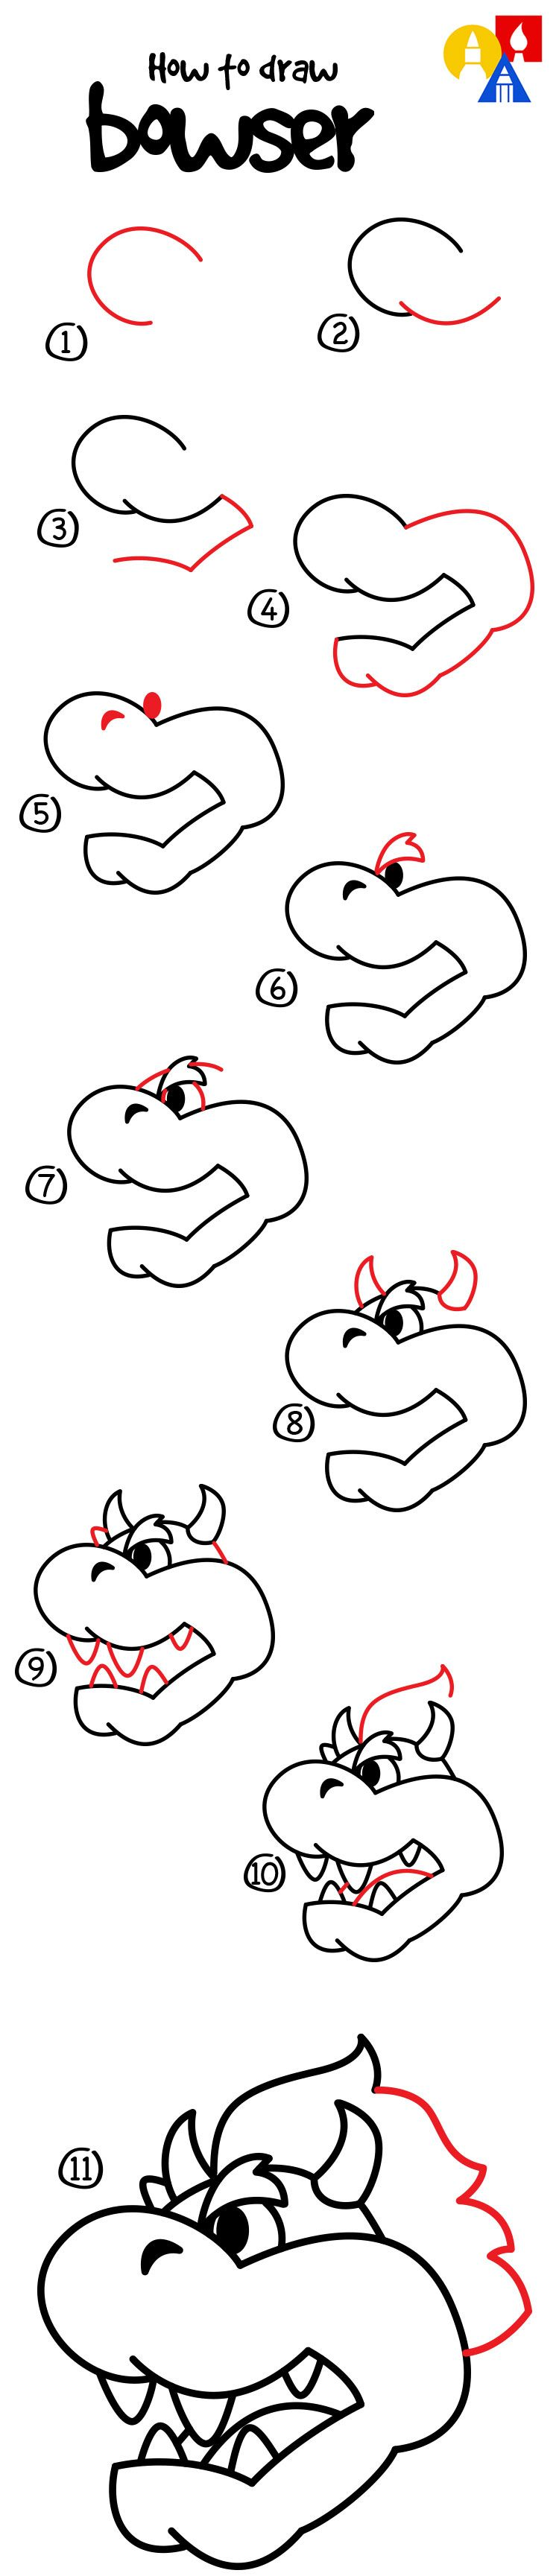 How To Draw Bowser - Art For Kids Hub - | Bowser, Drawings and Doodles